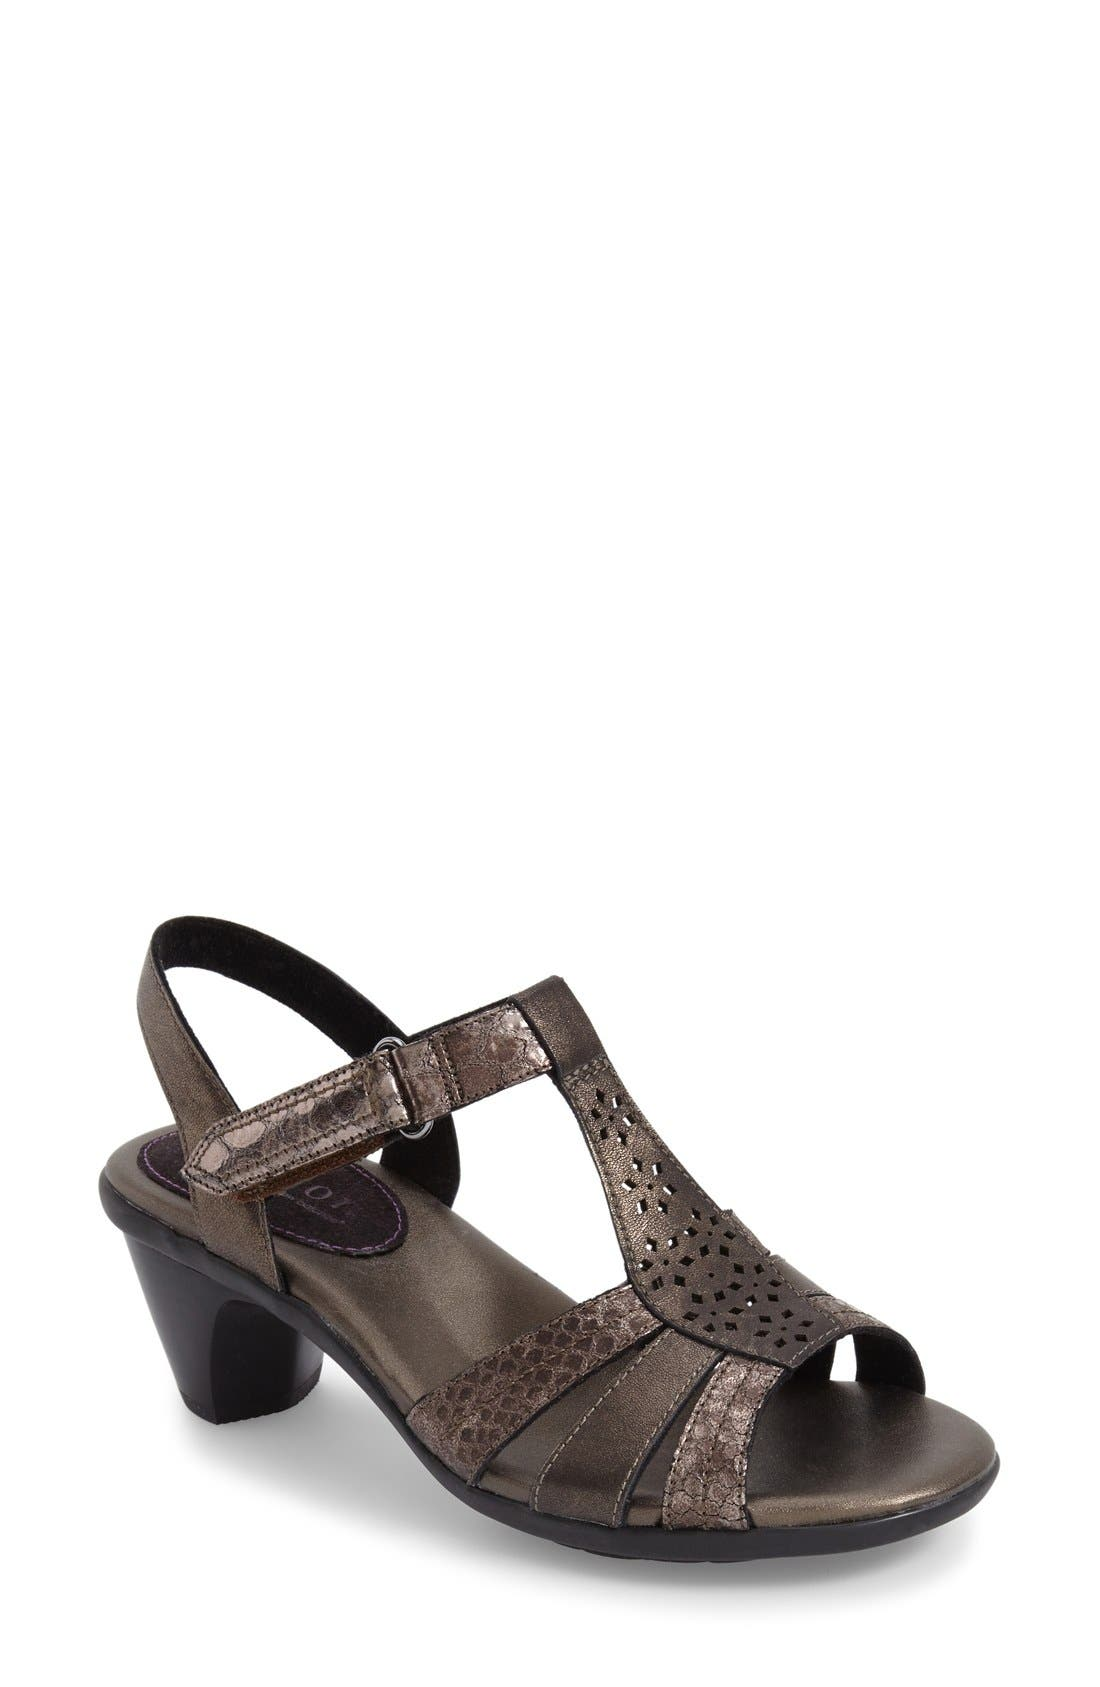 'Mary' T-Strap Sandal,                             Main thumbnail 1, color,                             Grey Leather